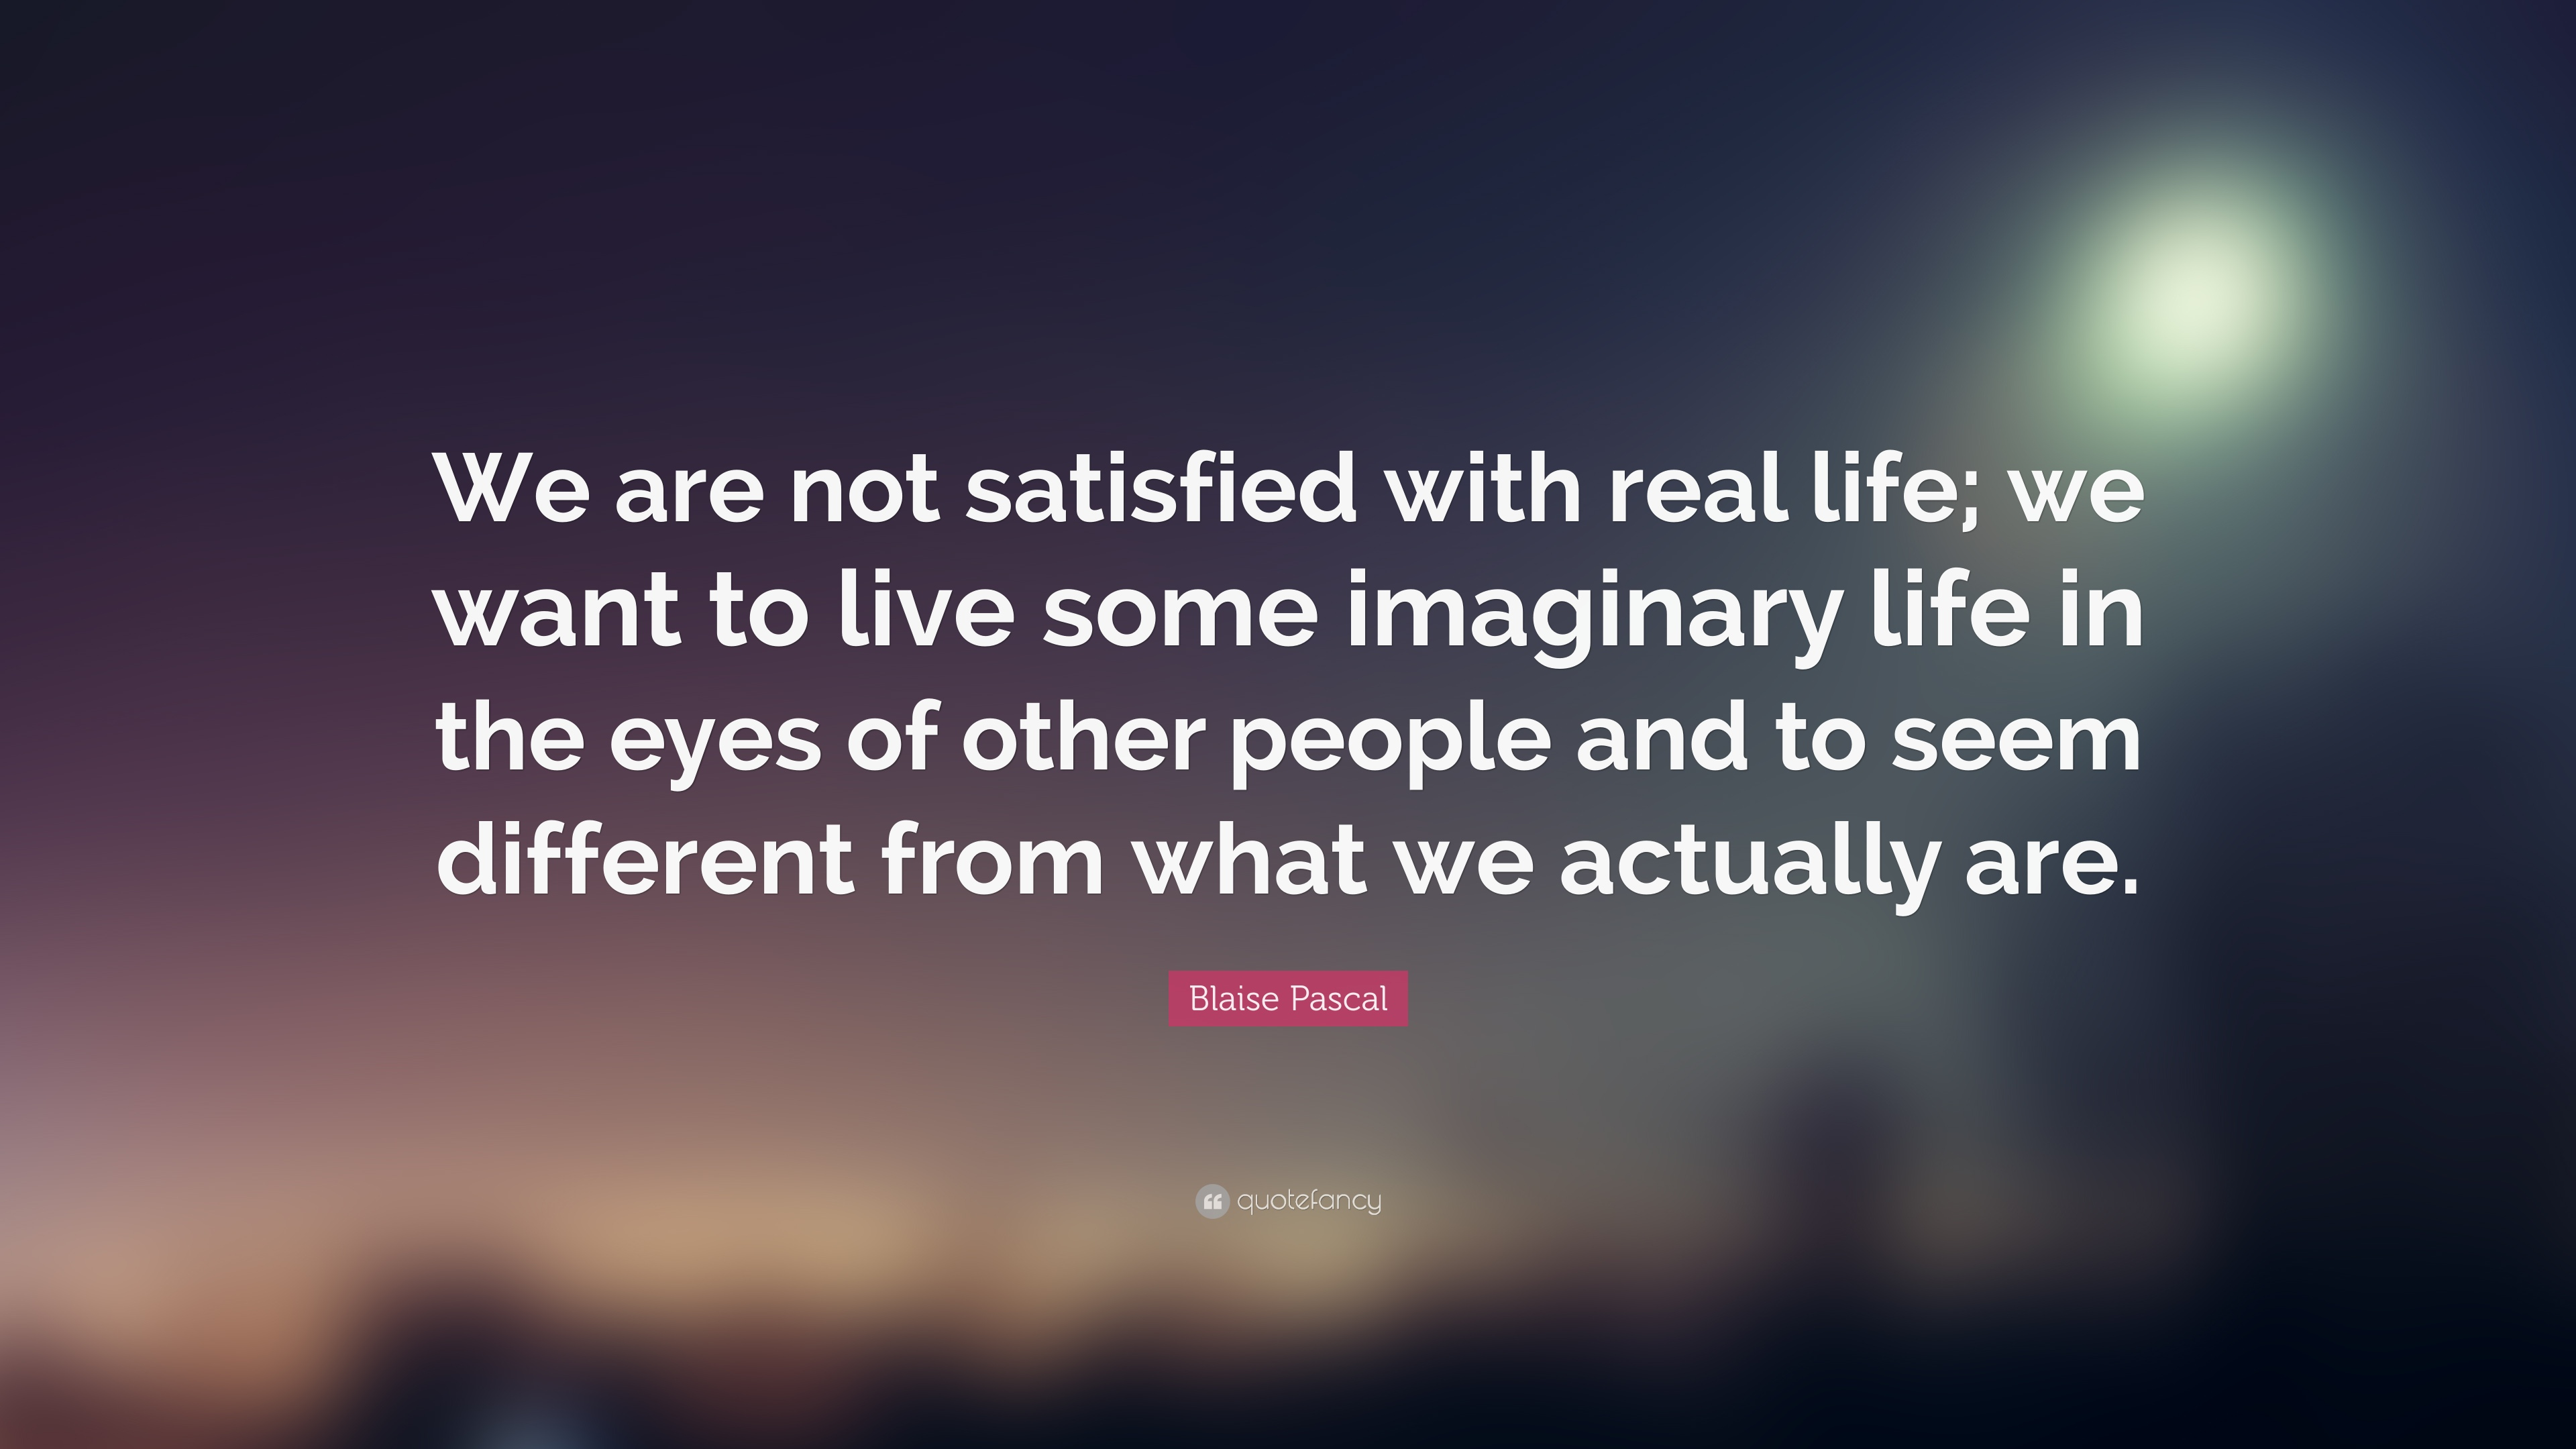 Blaise pascal quote we are not satisfied with real life we want blaise pascal quote we are not satisfied with real life we want to altavistaventures Image collections